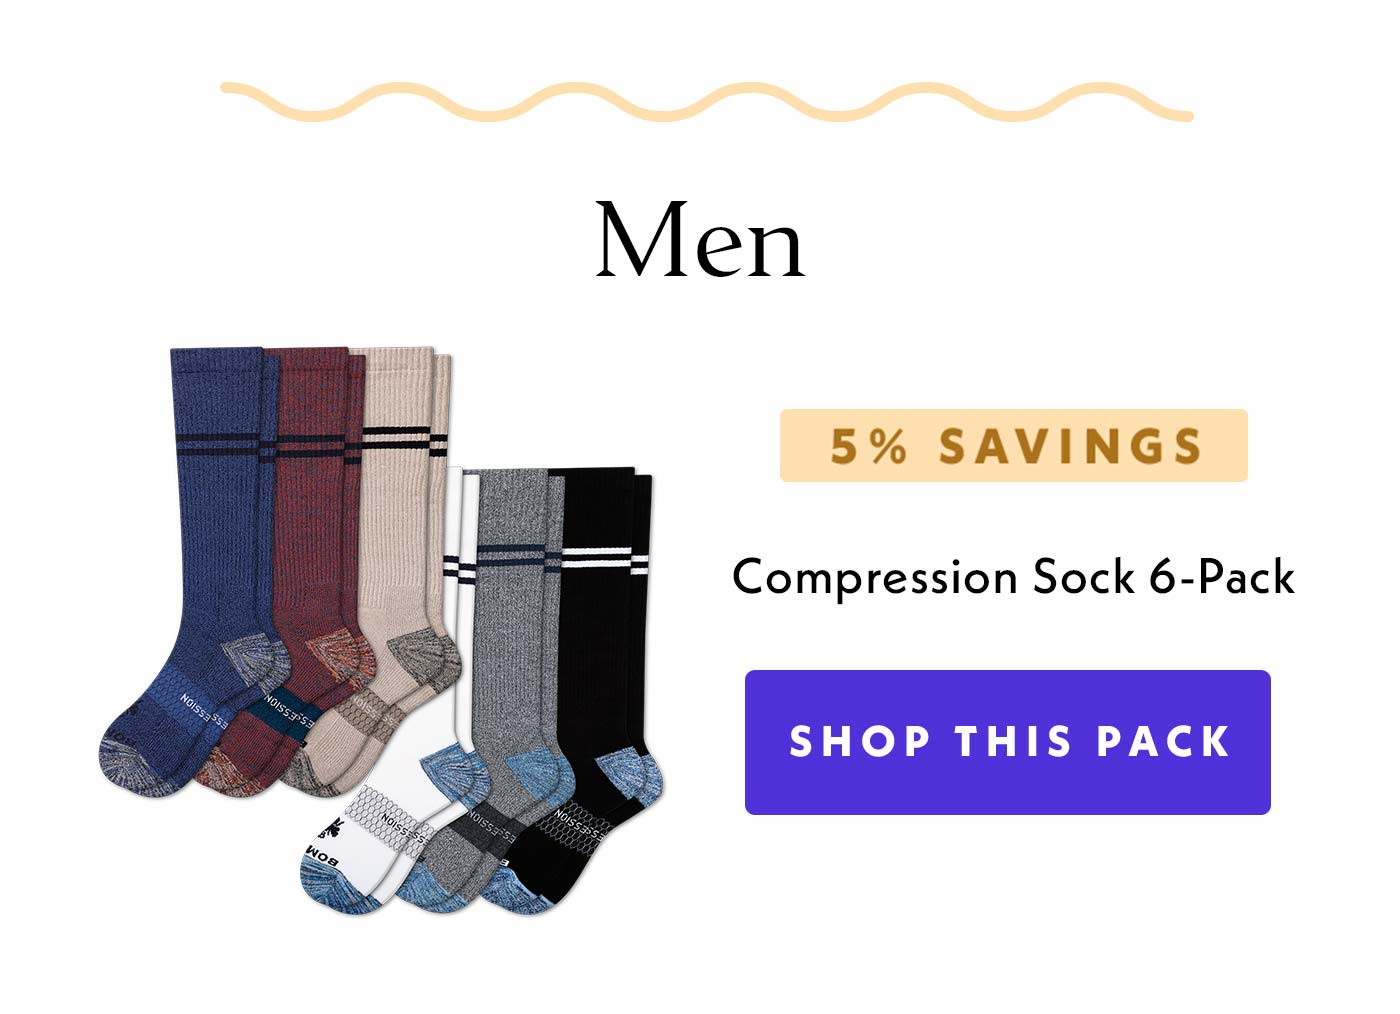 Men | 5% Savings | Compression Sock 6-Pack | Shop This Pack